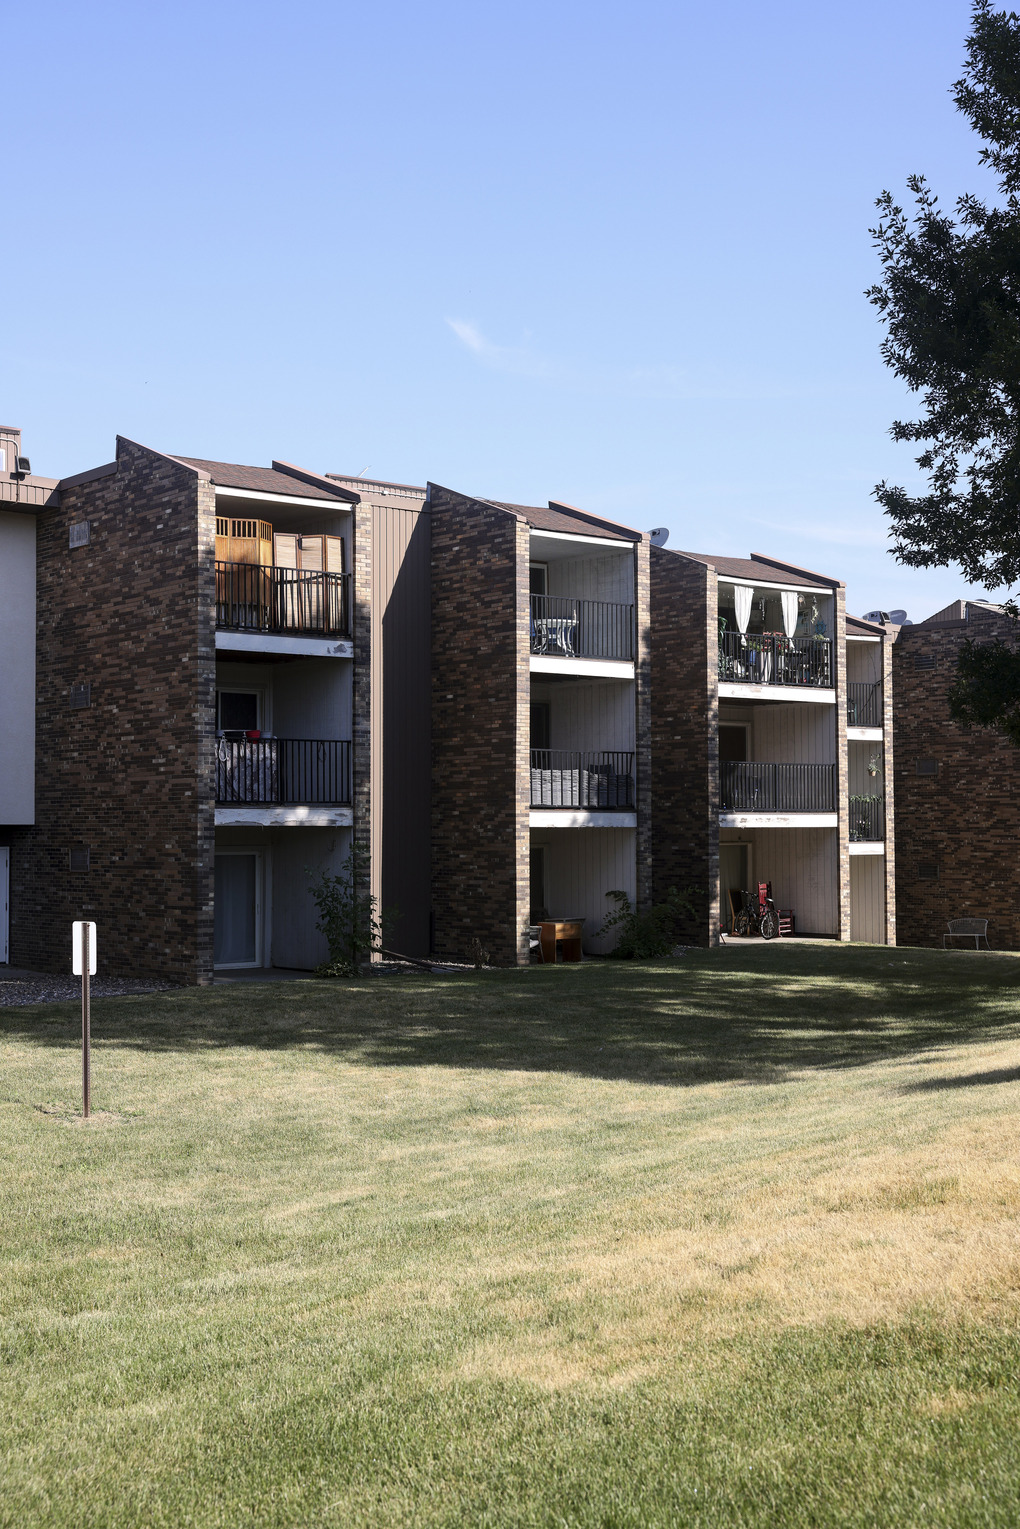 The Ridgeview Condominiums in Burnsville, Minnesota.,   need major repairs that  one consultant estimated would exceed $12 million. (Jenn Ackerman / The New York Times)